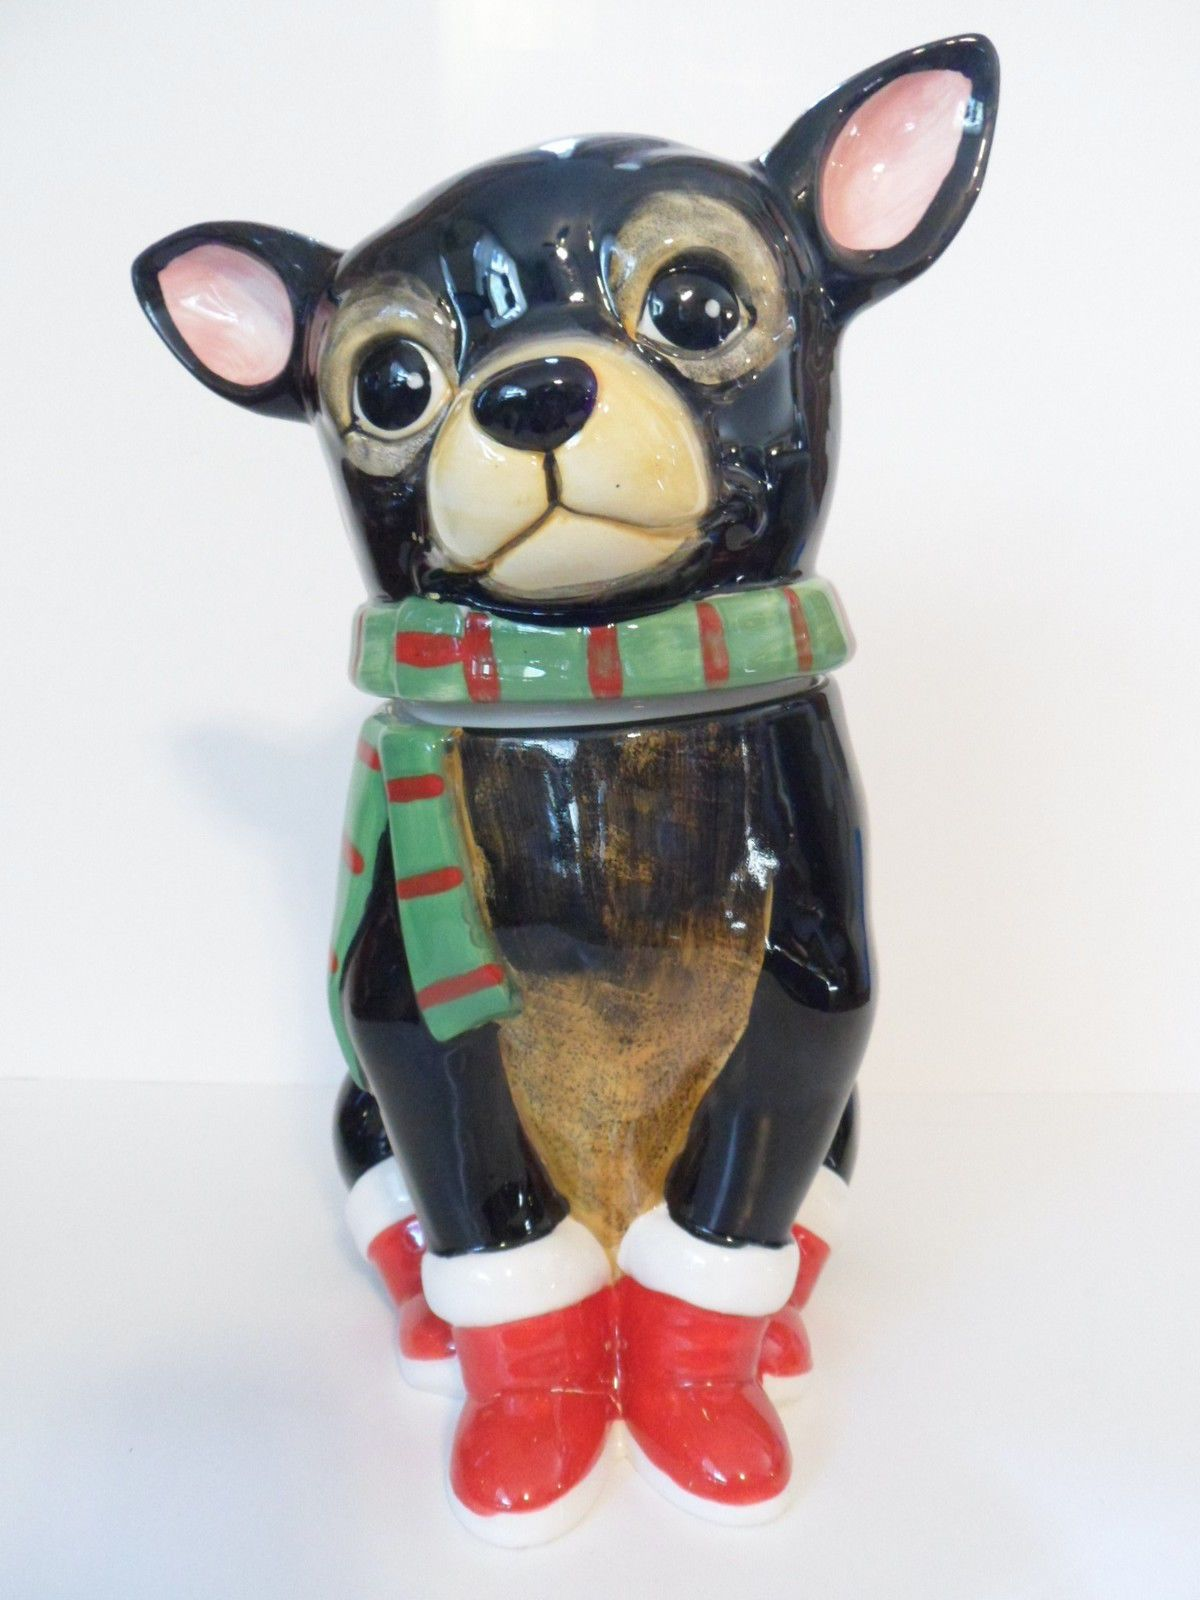 Chihuahua Cookie Jar Adorable Starbucks San Francisco 2015 Ceramic Holiday Christmas Ornament Design Ideas